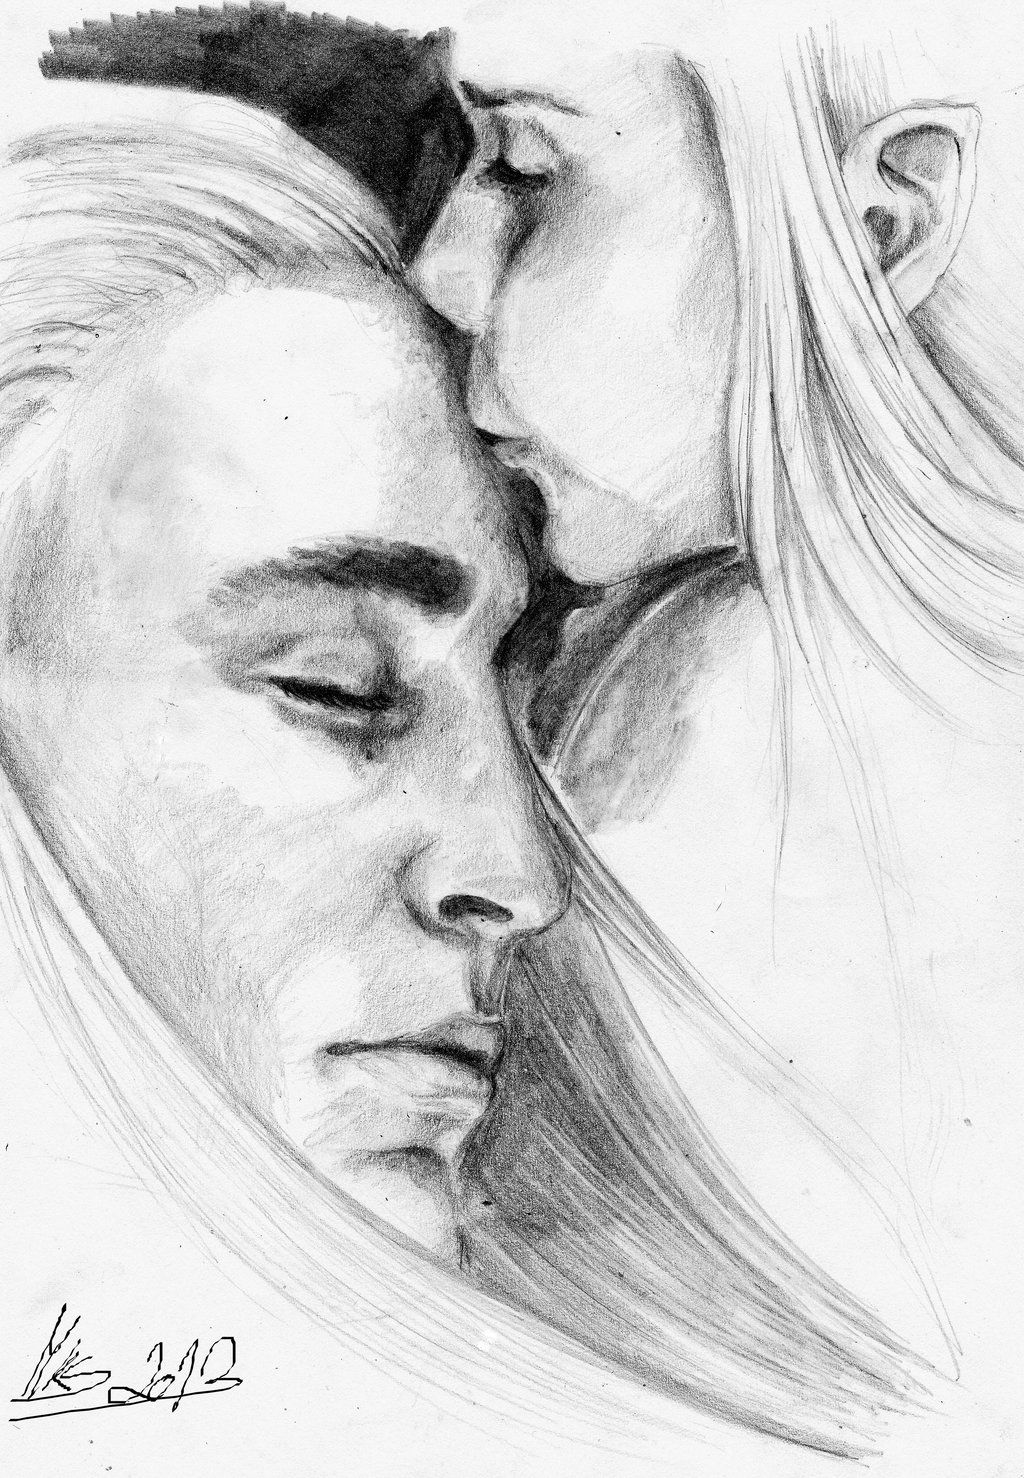 legolas and thranduil relationship